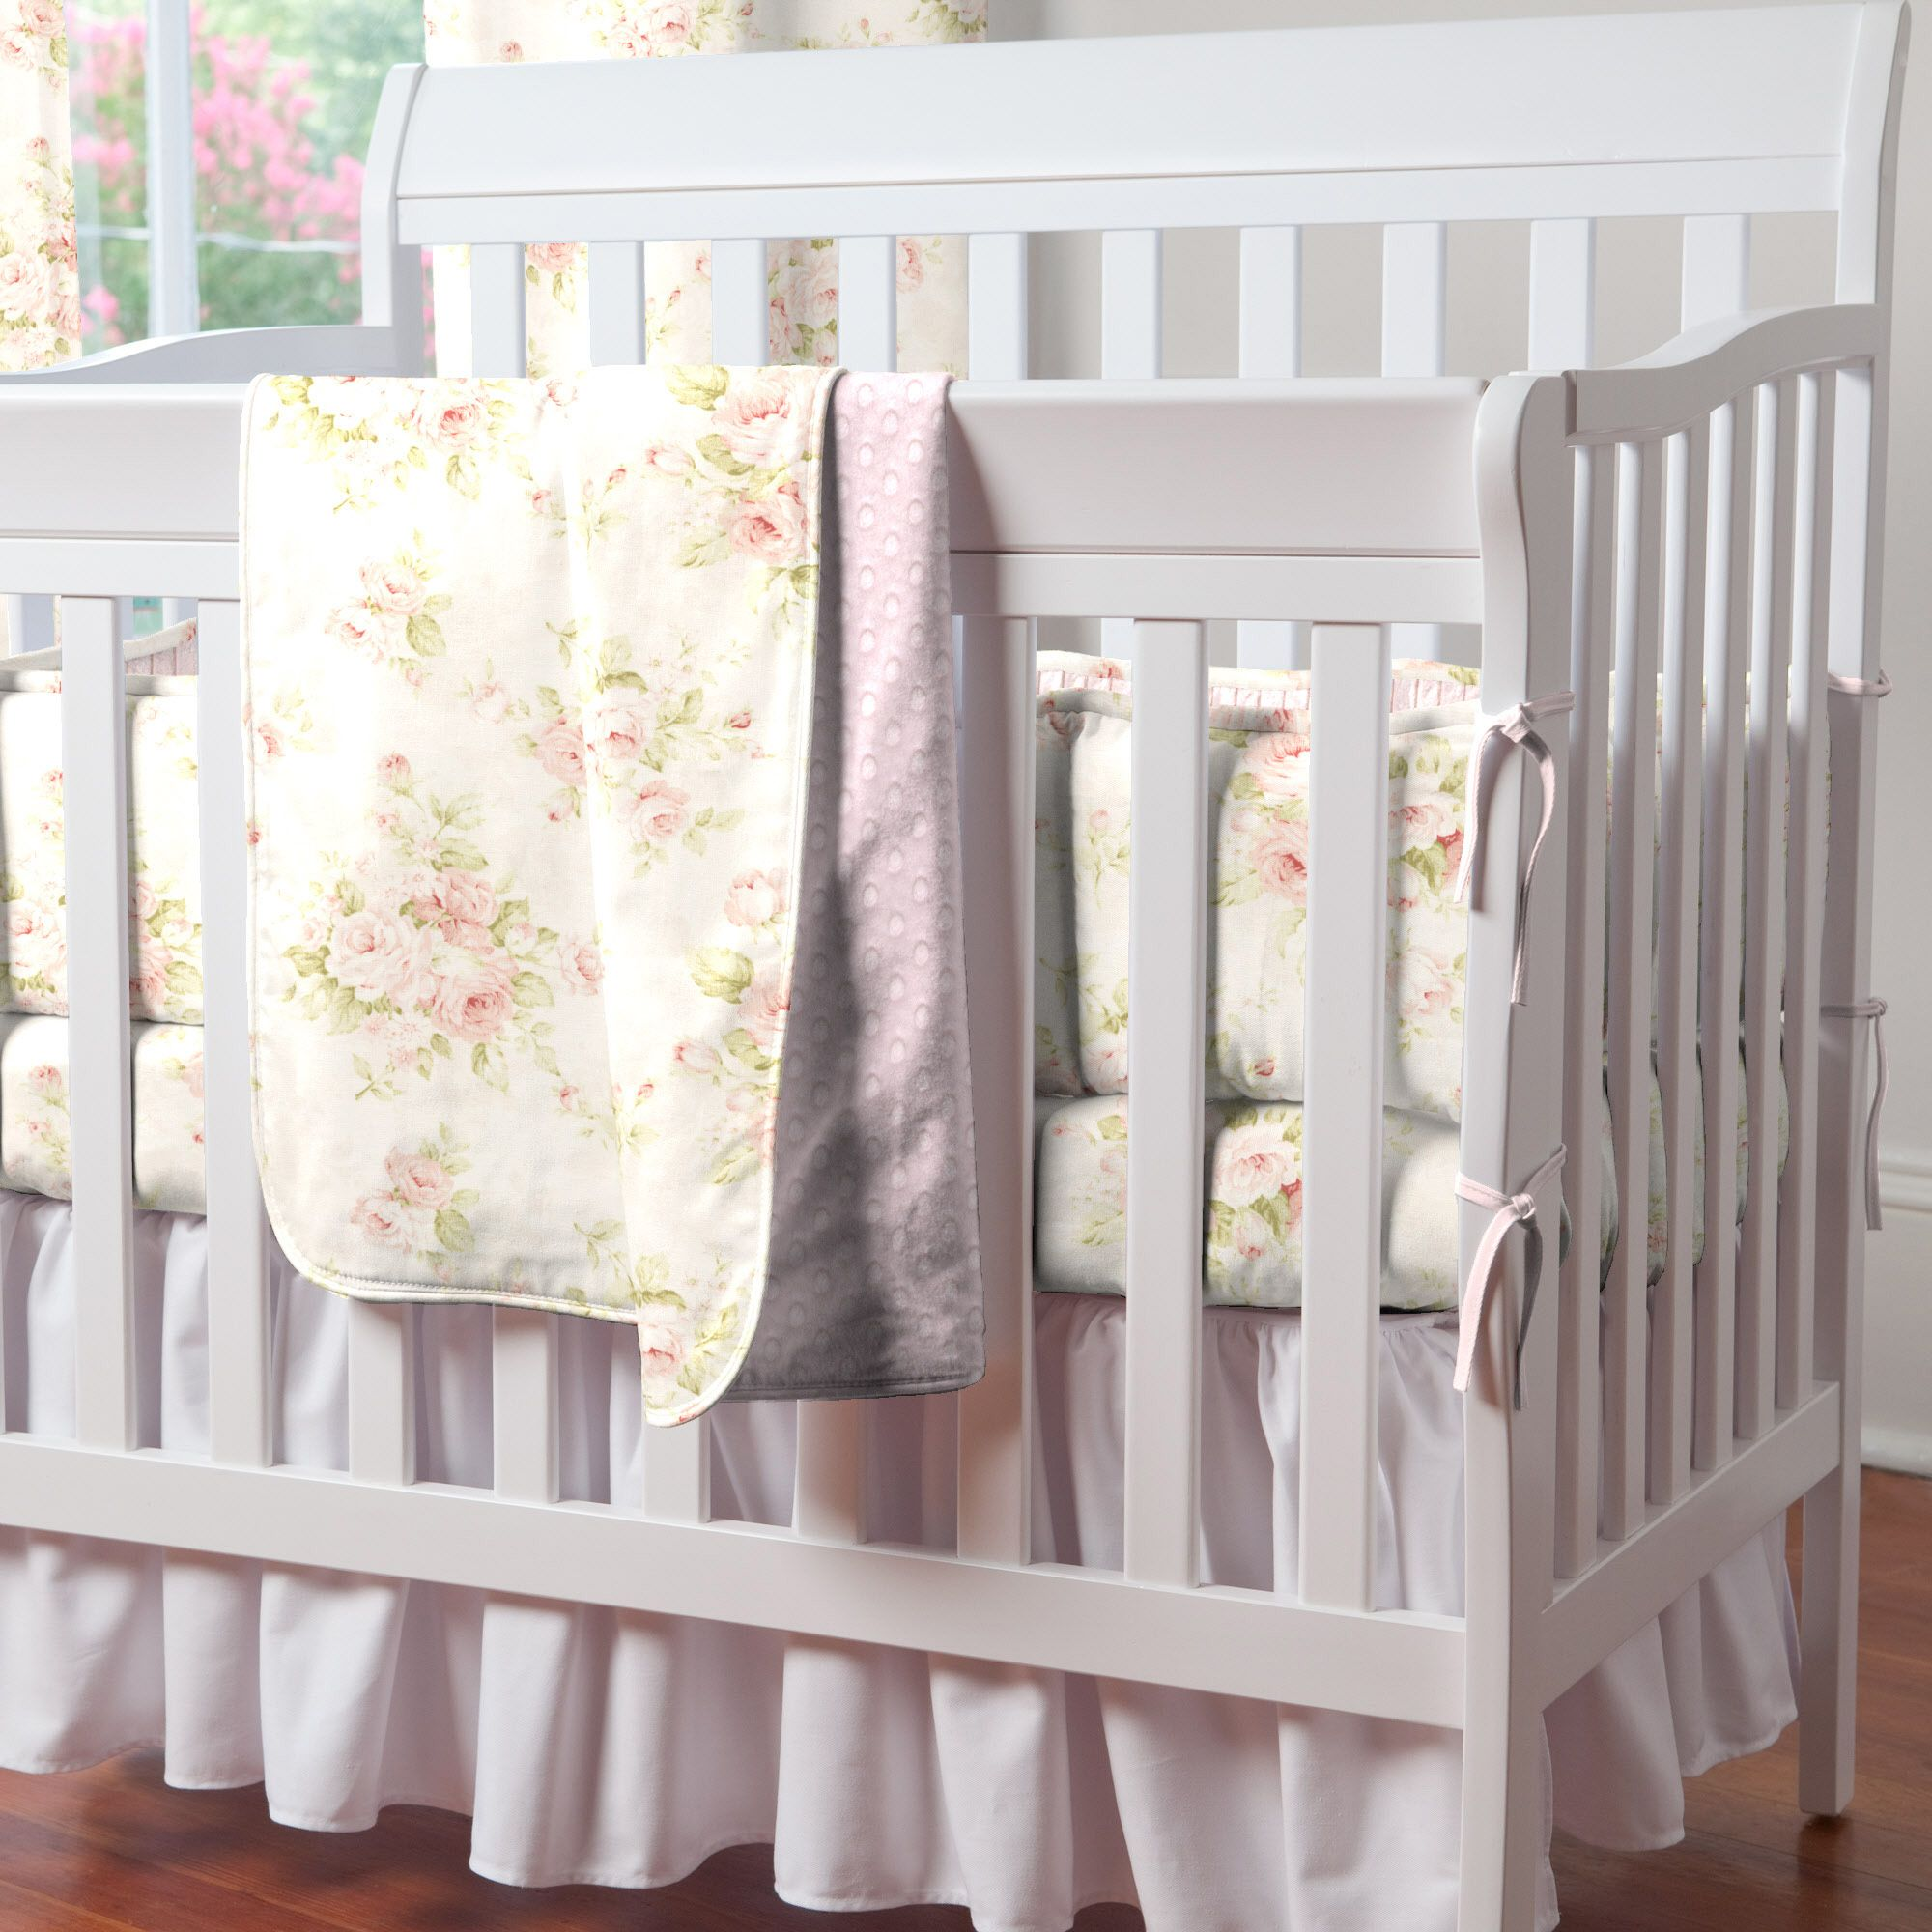 Mini Crib Bedding Sets For Girl.Shabby Chenille Mini Crib Bedding Ohhhh Baby Mini